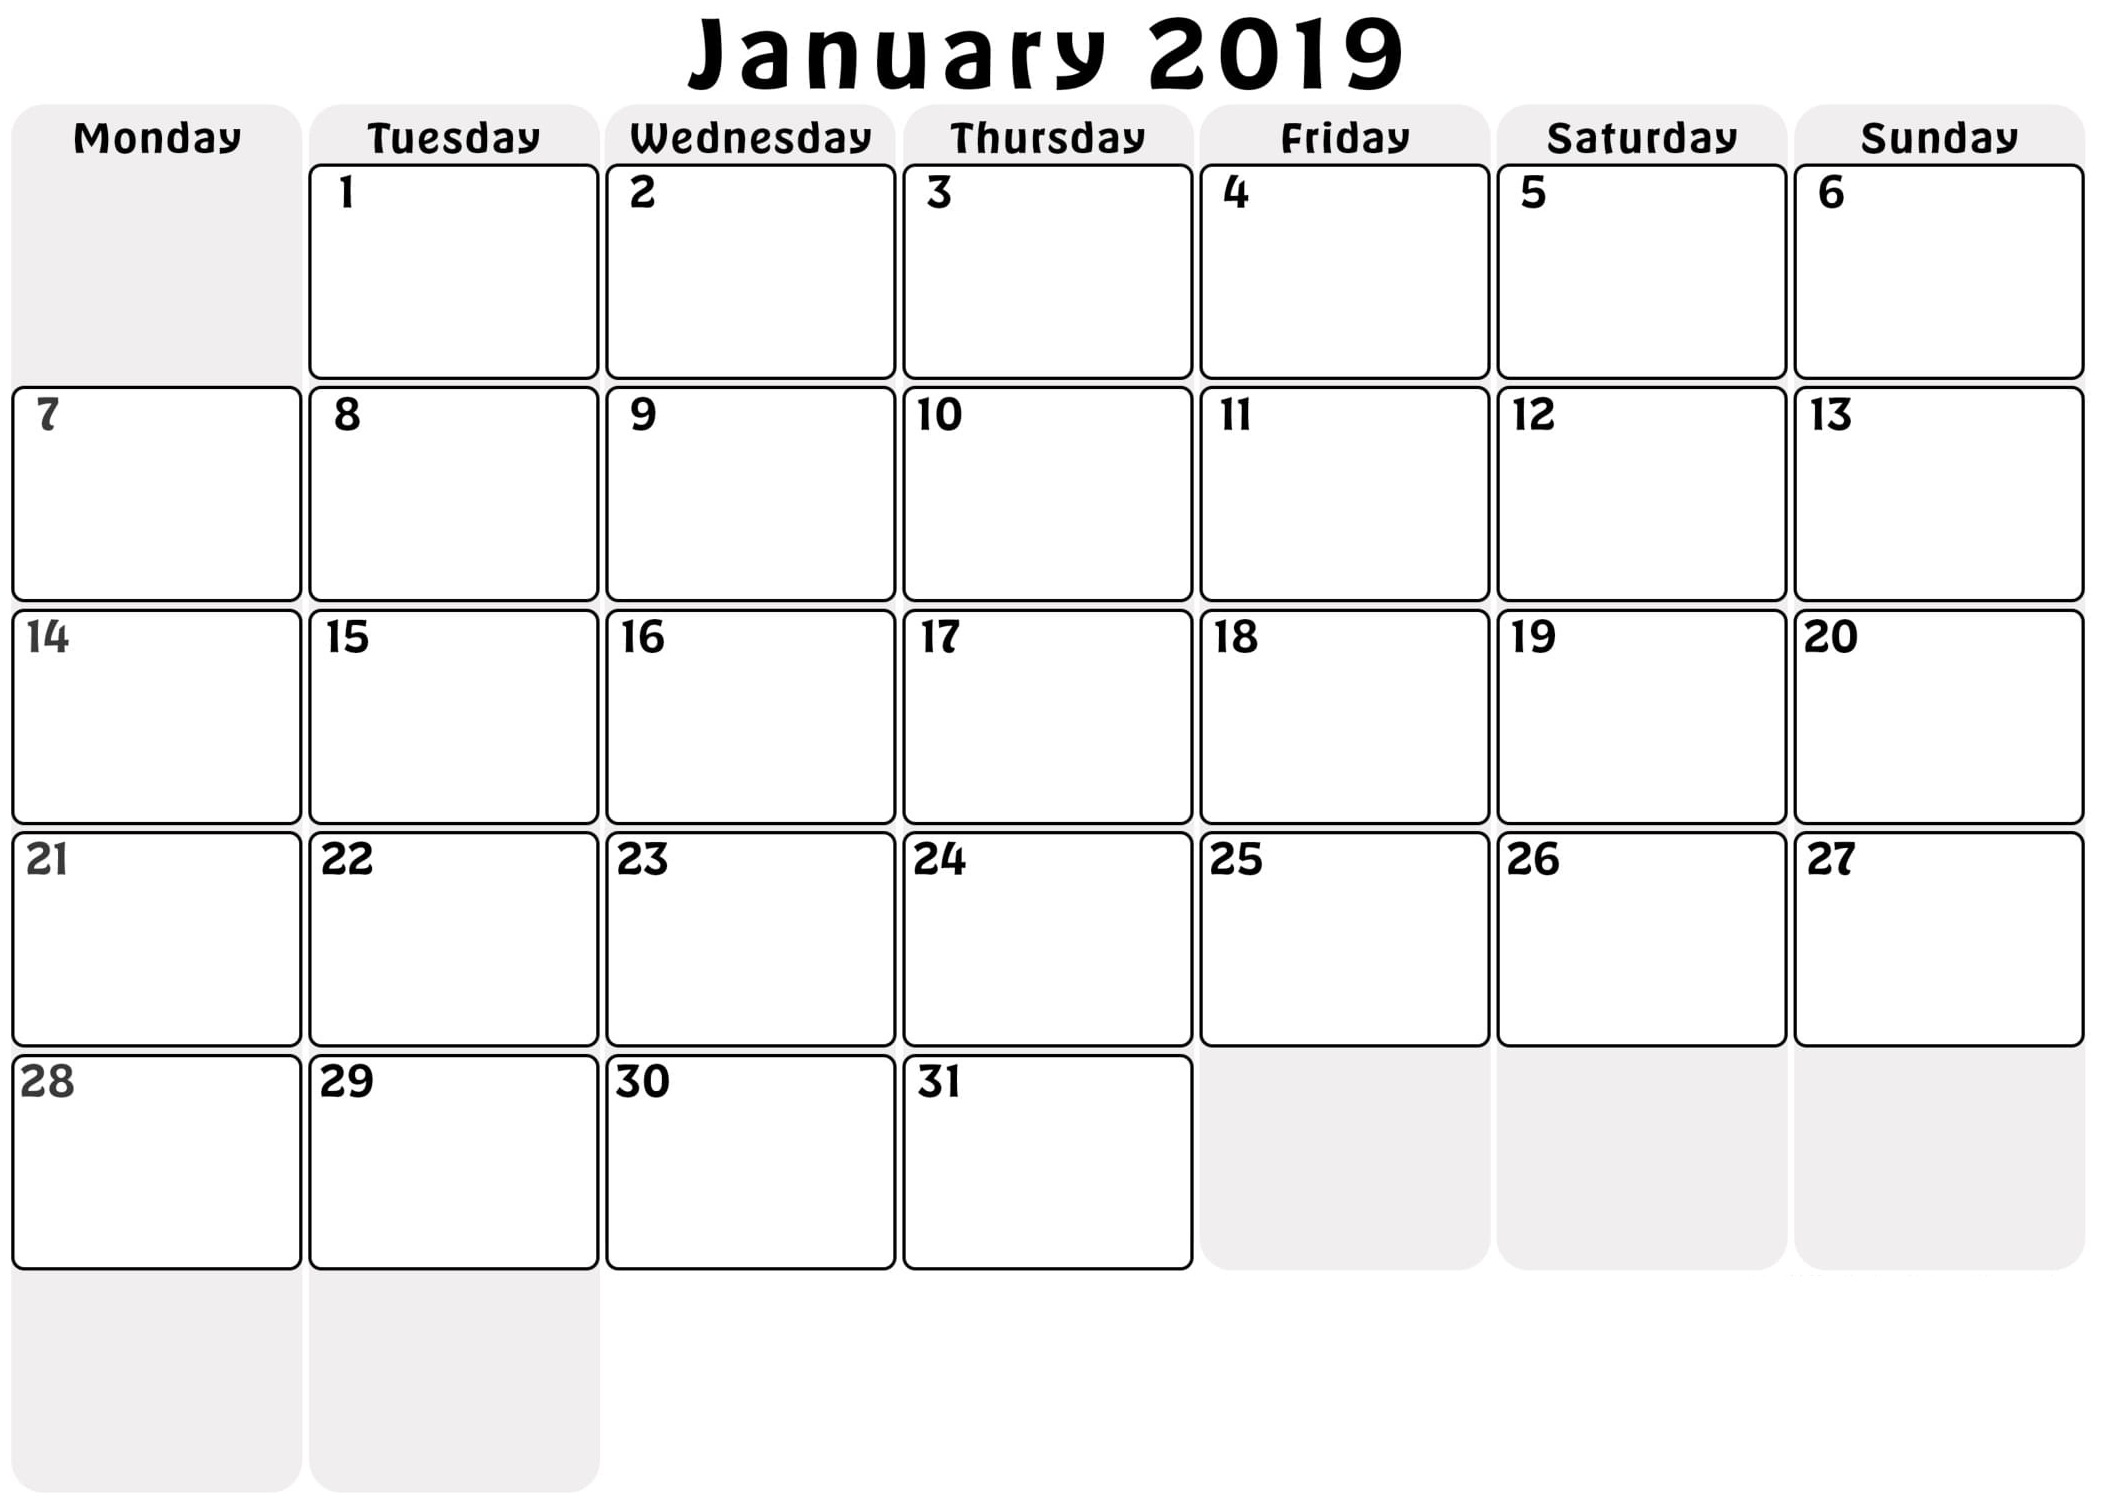 photo relating to January Calendar Printable referred to as January 2019 Calendar Month to month Printable - Totally free August 2019